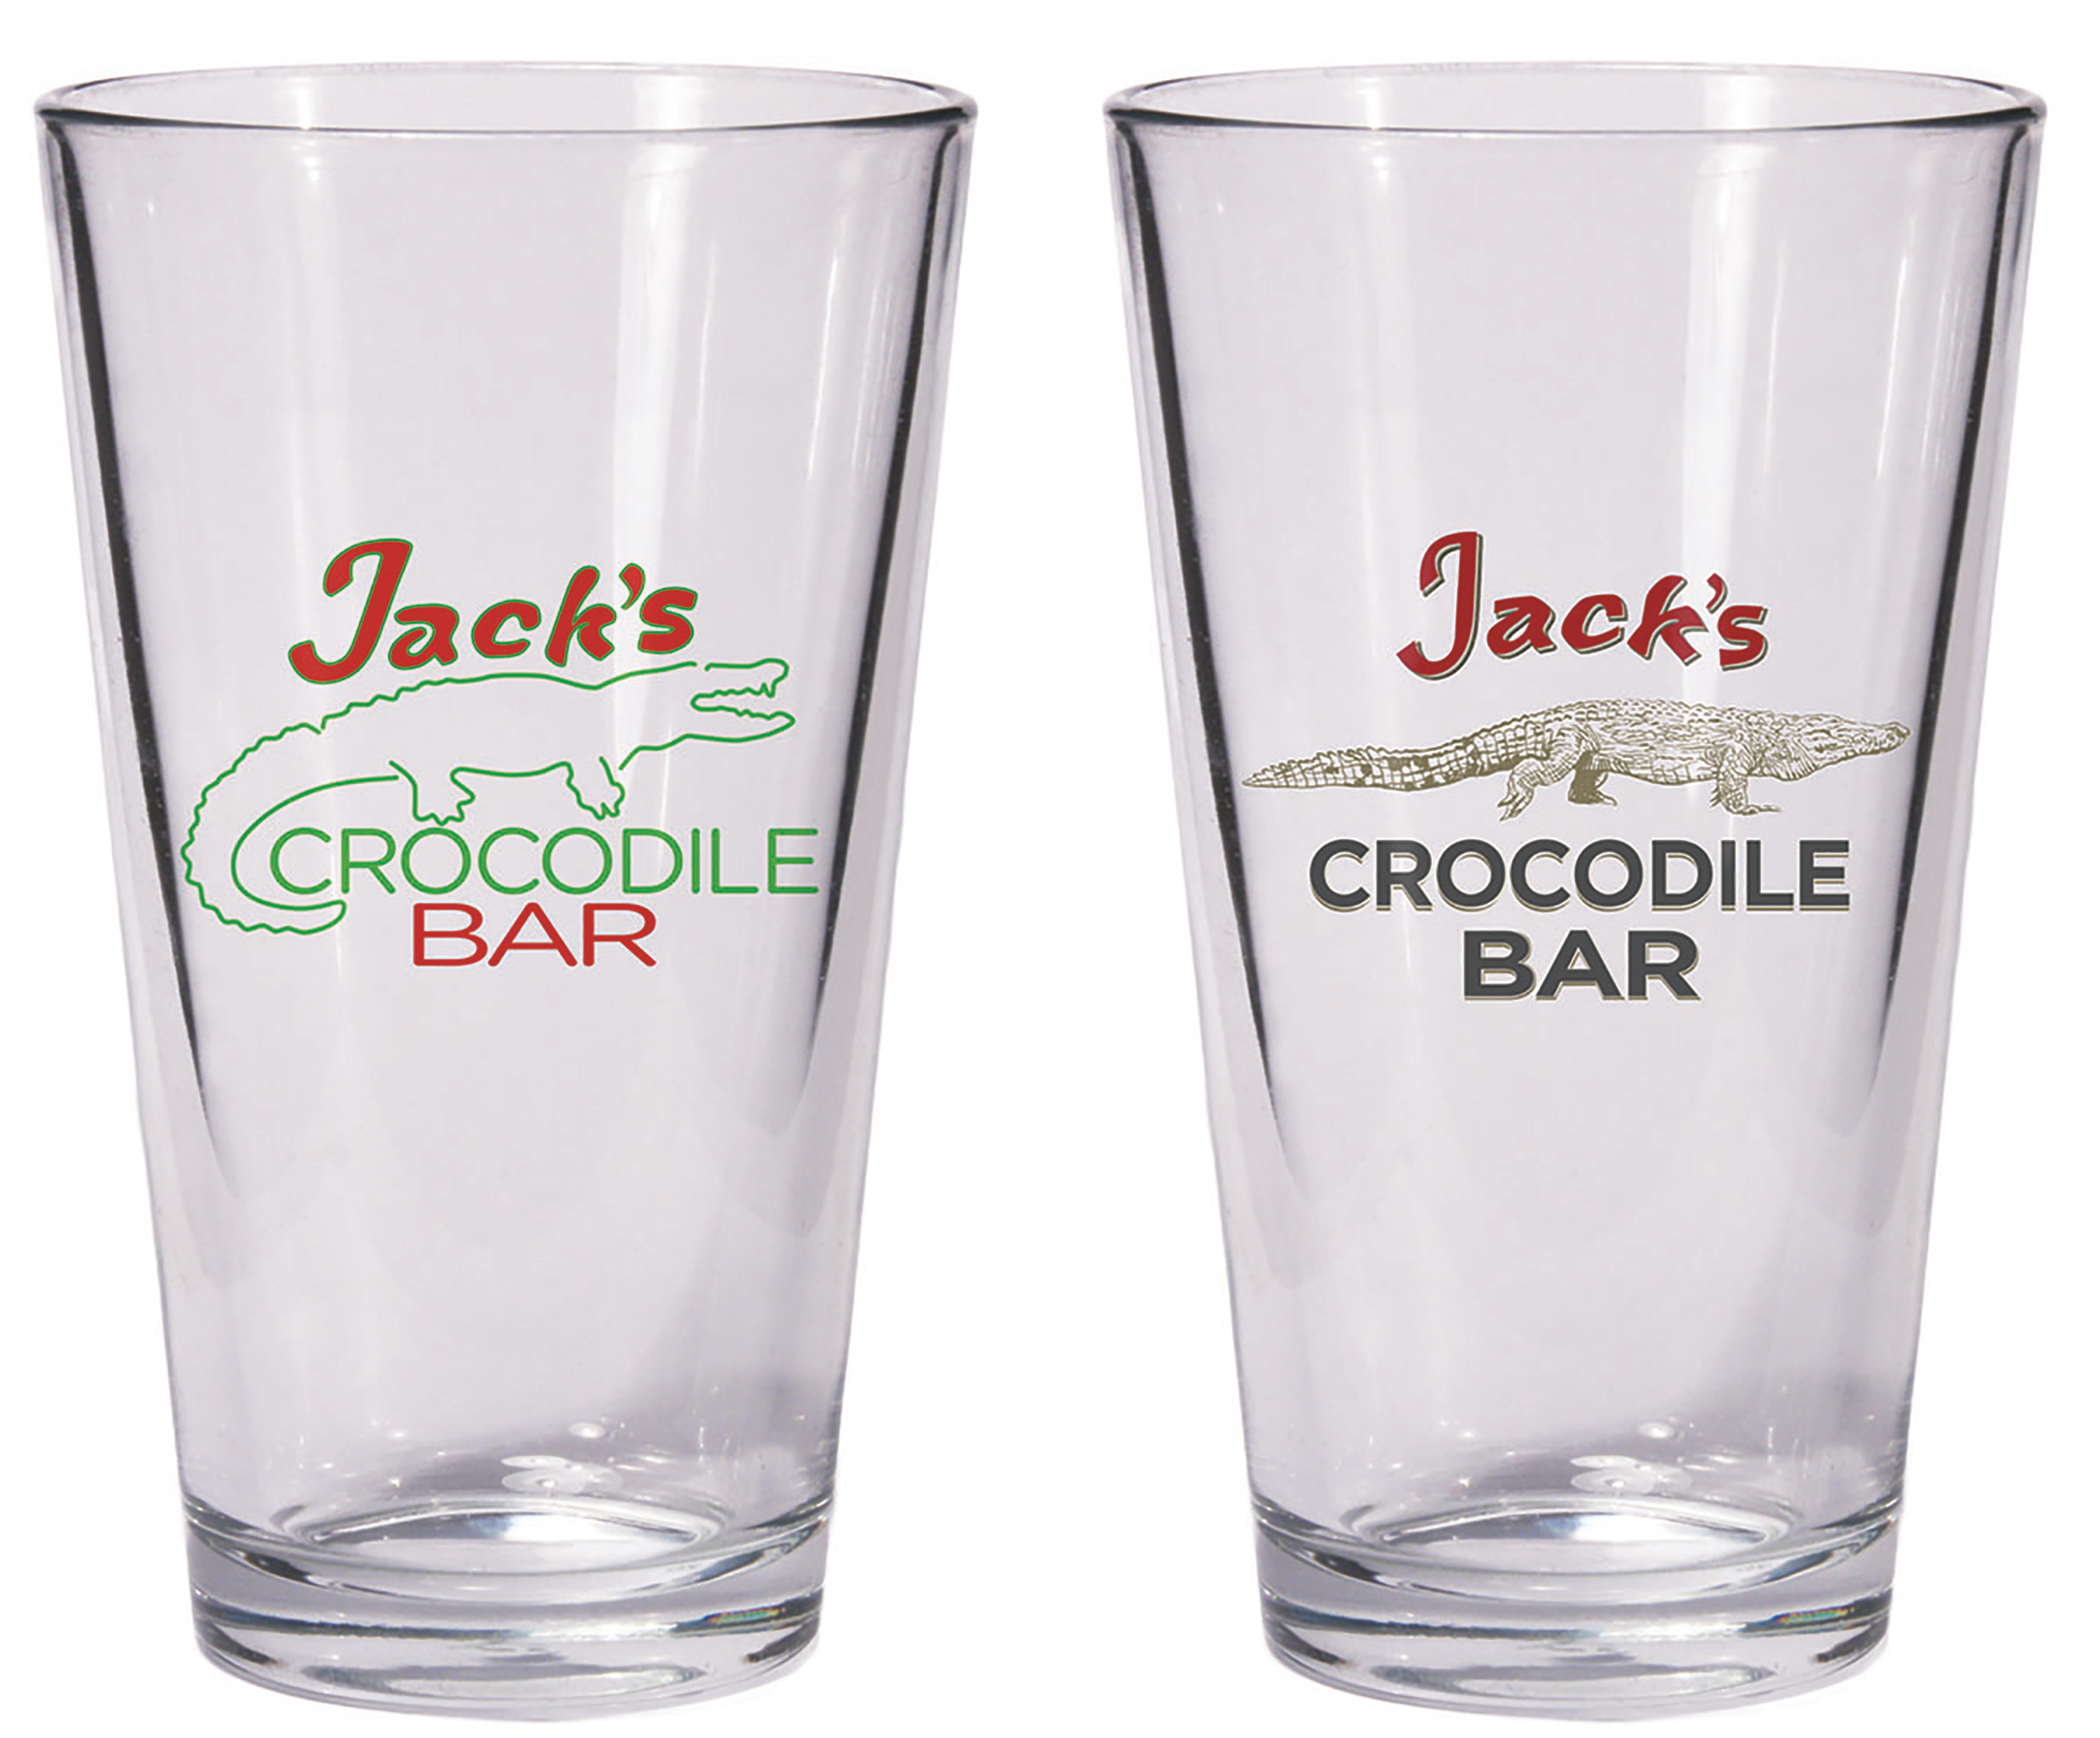 AMERICAN GODS JACKS CROCODILE BAR PINT GLASS SET (JUL180517)